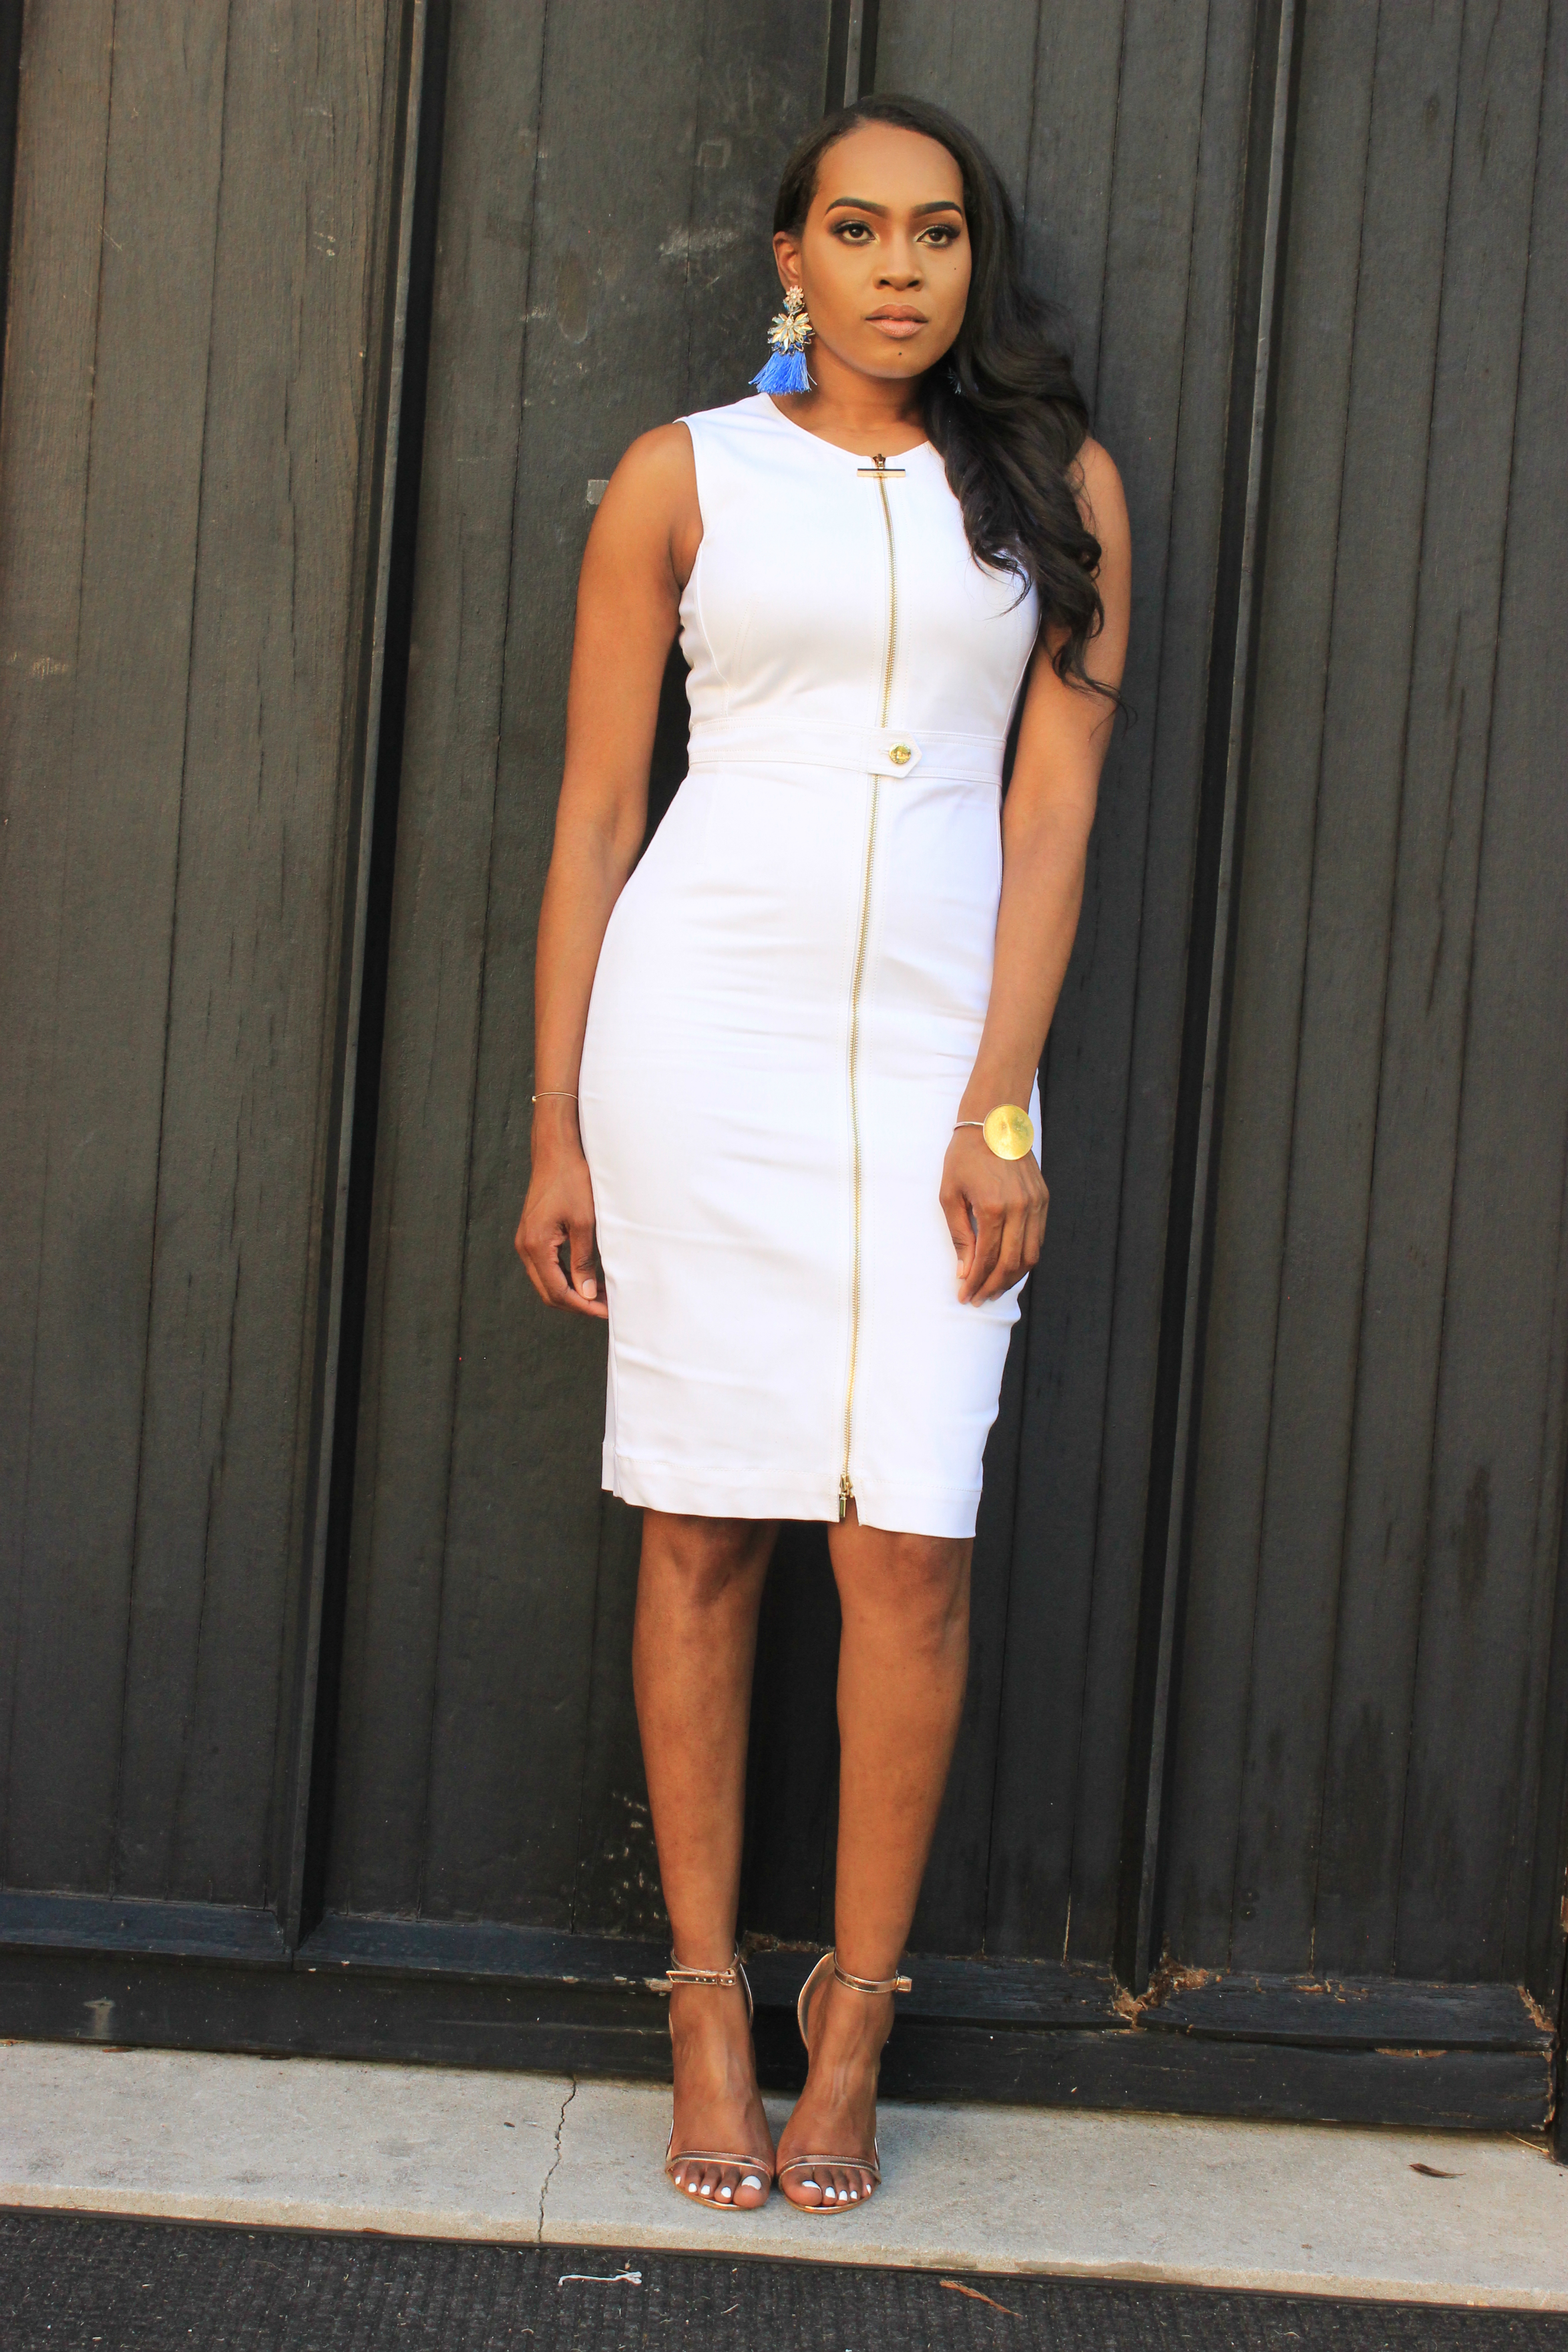 Style-Files-White-Sheath-Calvin-Klein-Dress-with-front-exposed-gold-zipper-sky-blue-fringe-earrings-truffle-collection-barely-there-heel-sandal-rose-gold-how-to-wear-white-to-work-birmingham-top-blogger-oohlalablog-9